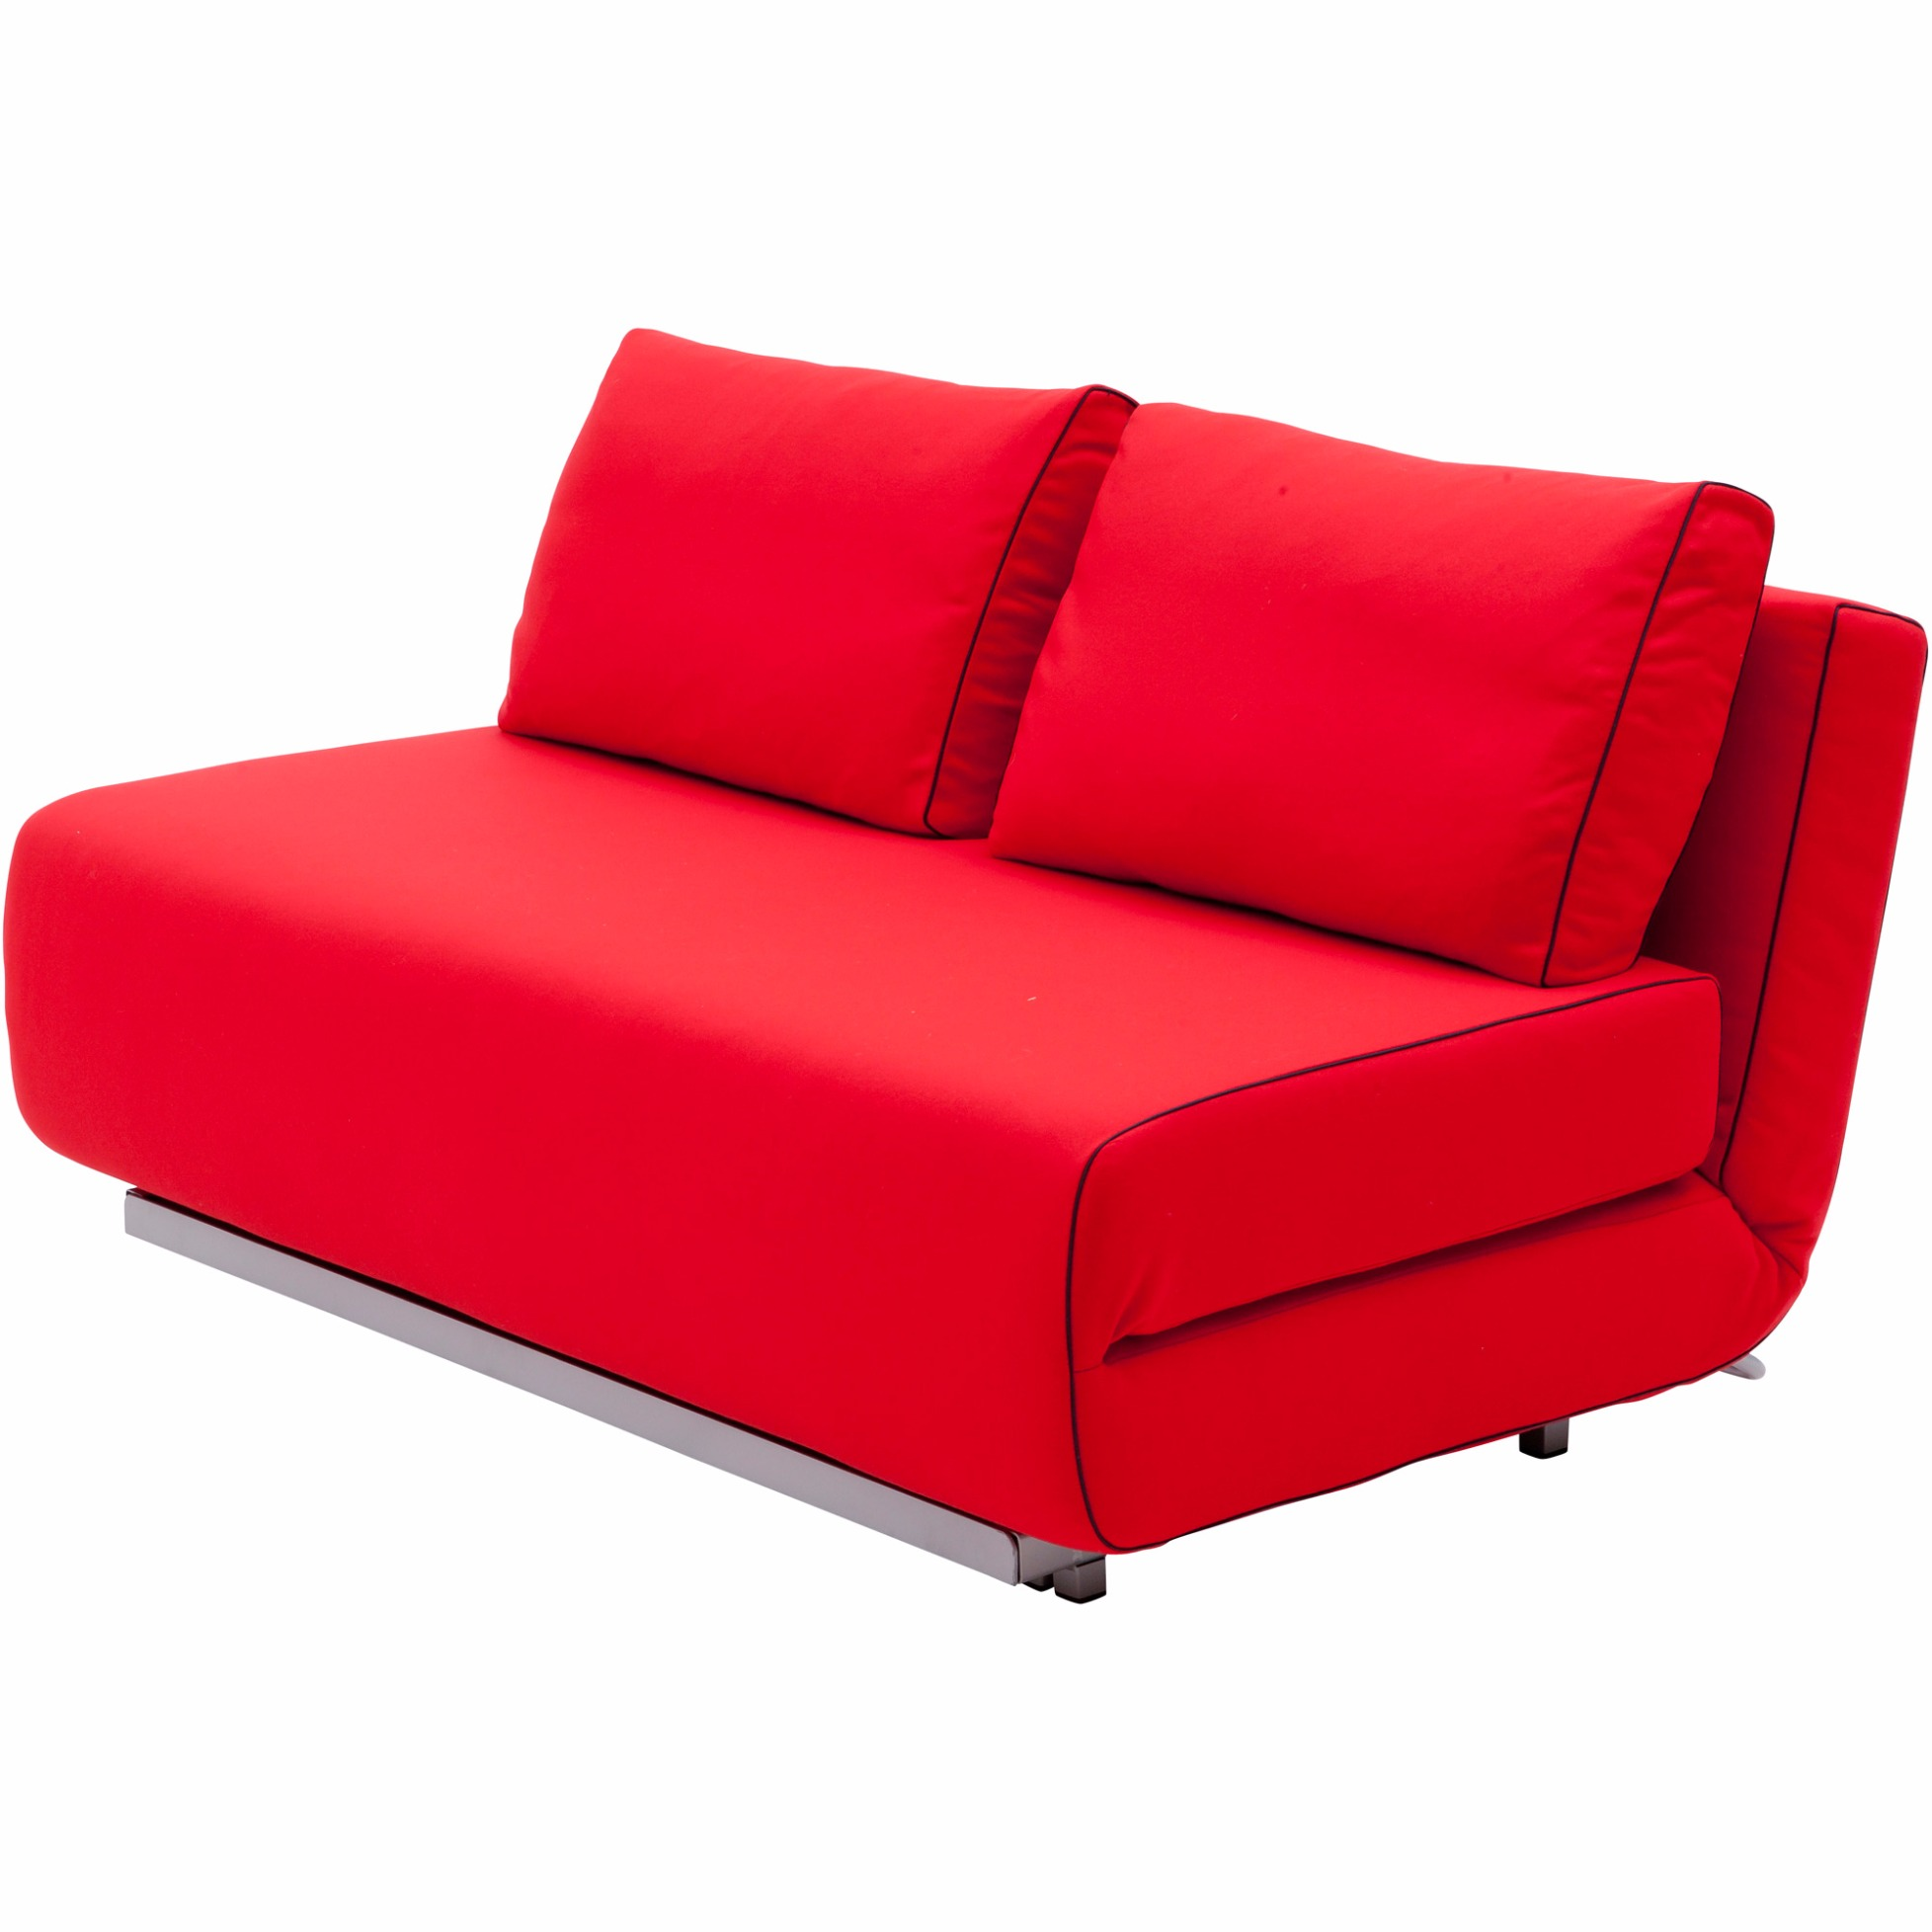 schlafsofa fr 1 person top best b famous schlafsofa mit with schlafsofa fr 1 person schlafsofa. Black Bedroom Furniture Sets. Home Design Ideas